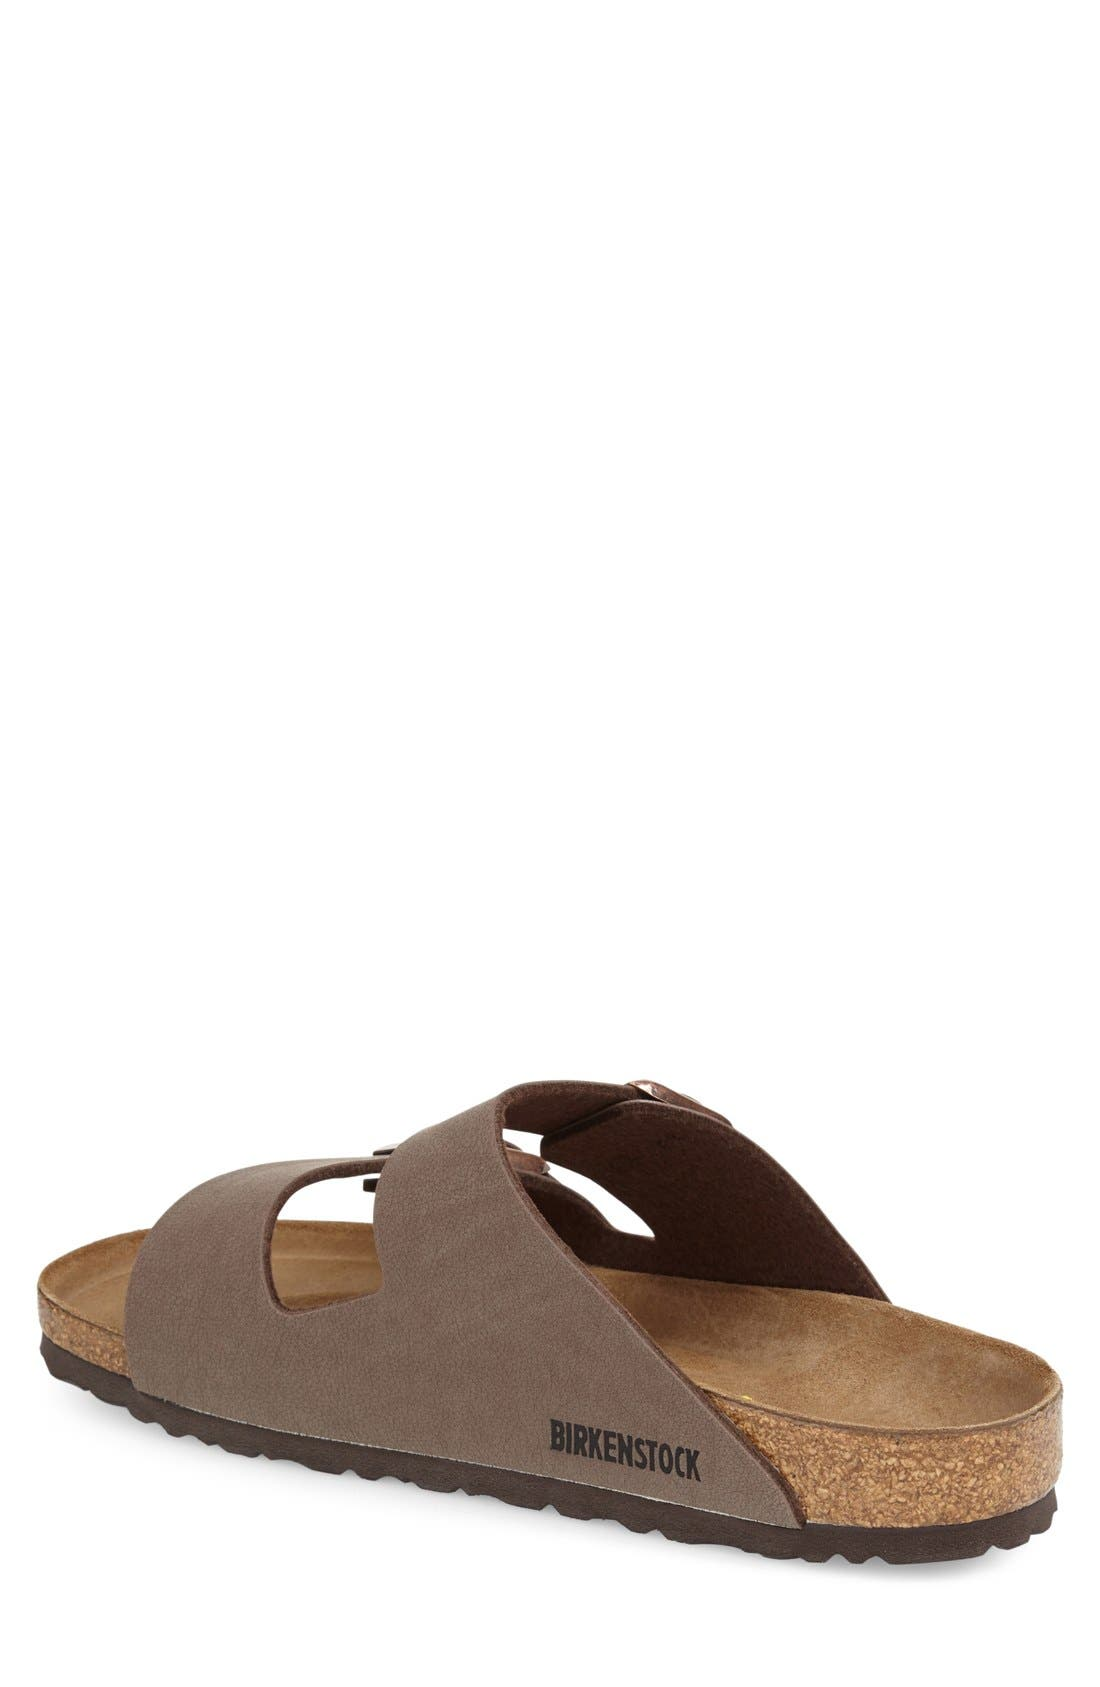 'Arizona' Slide Sandal,                             Alternate thumbnail 3, color,                             MOCHA